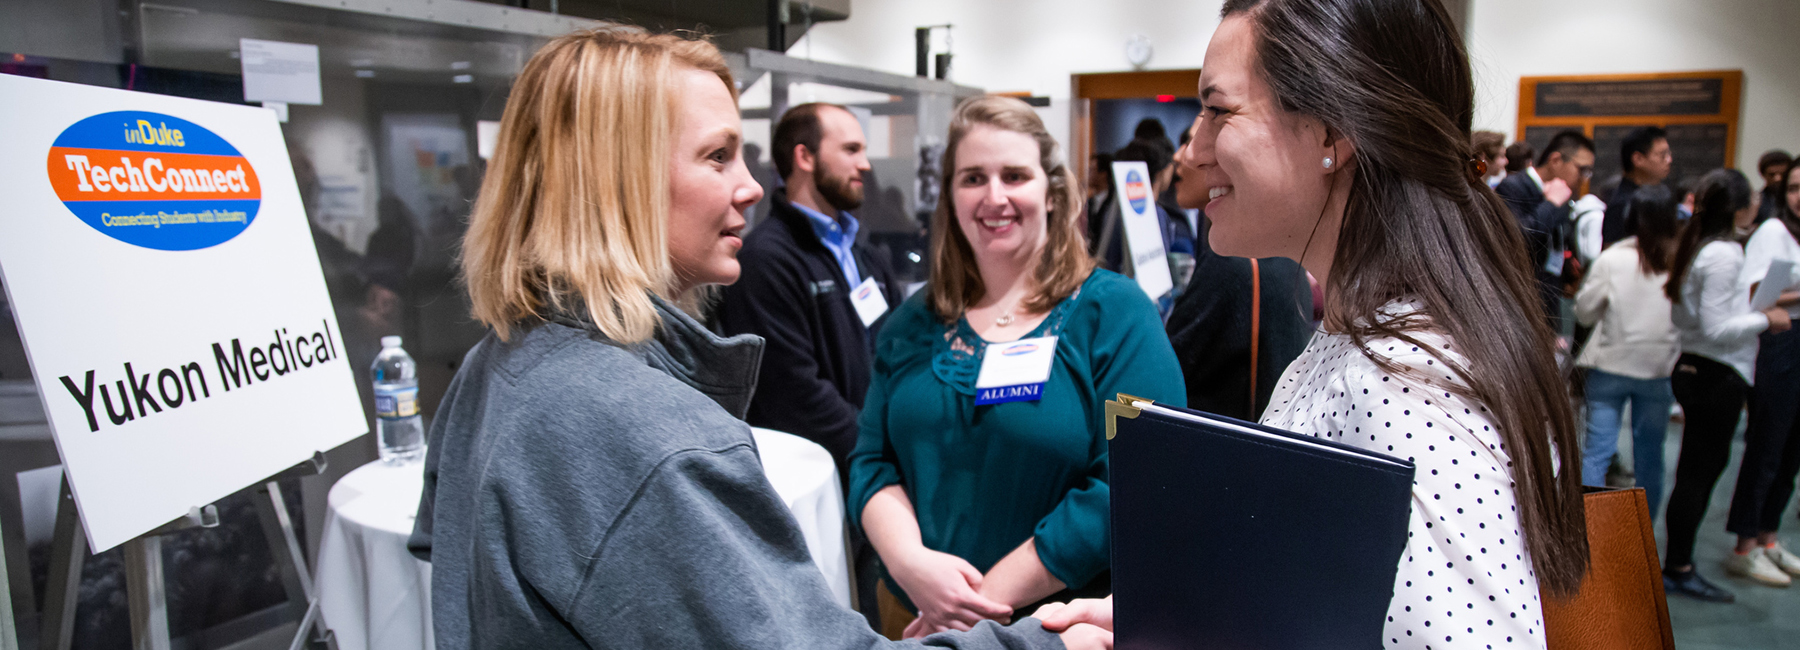 Yukon Medical at Duke TechConnect 2019 January Event